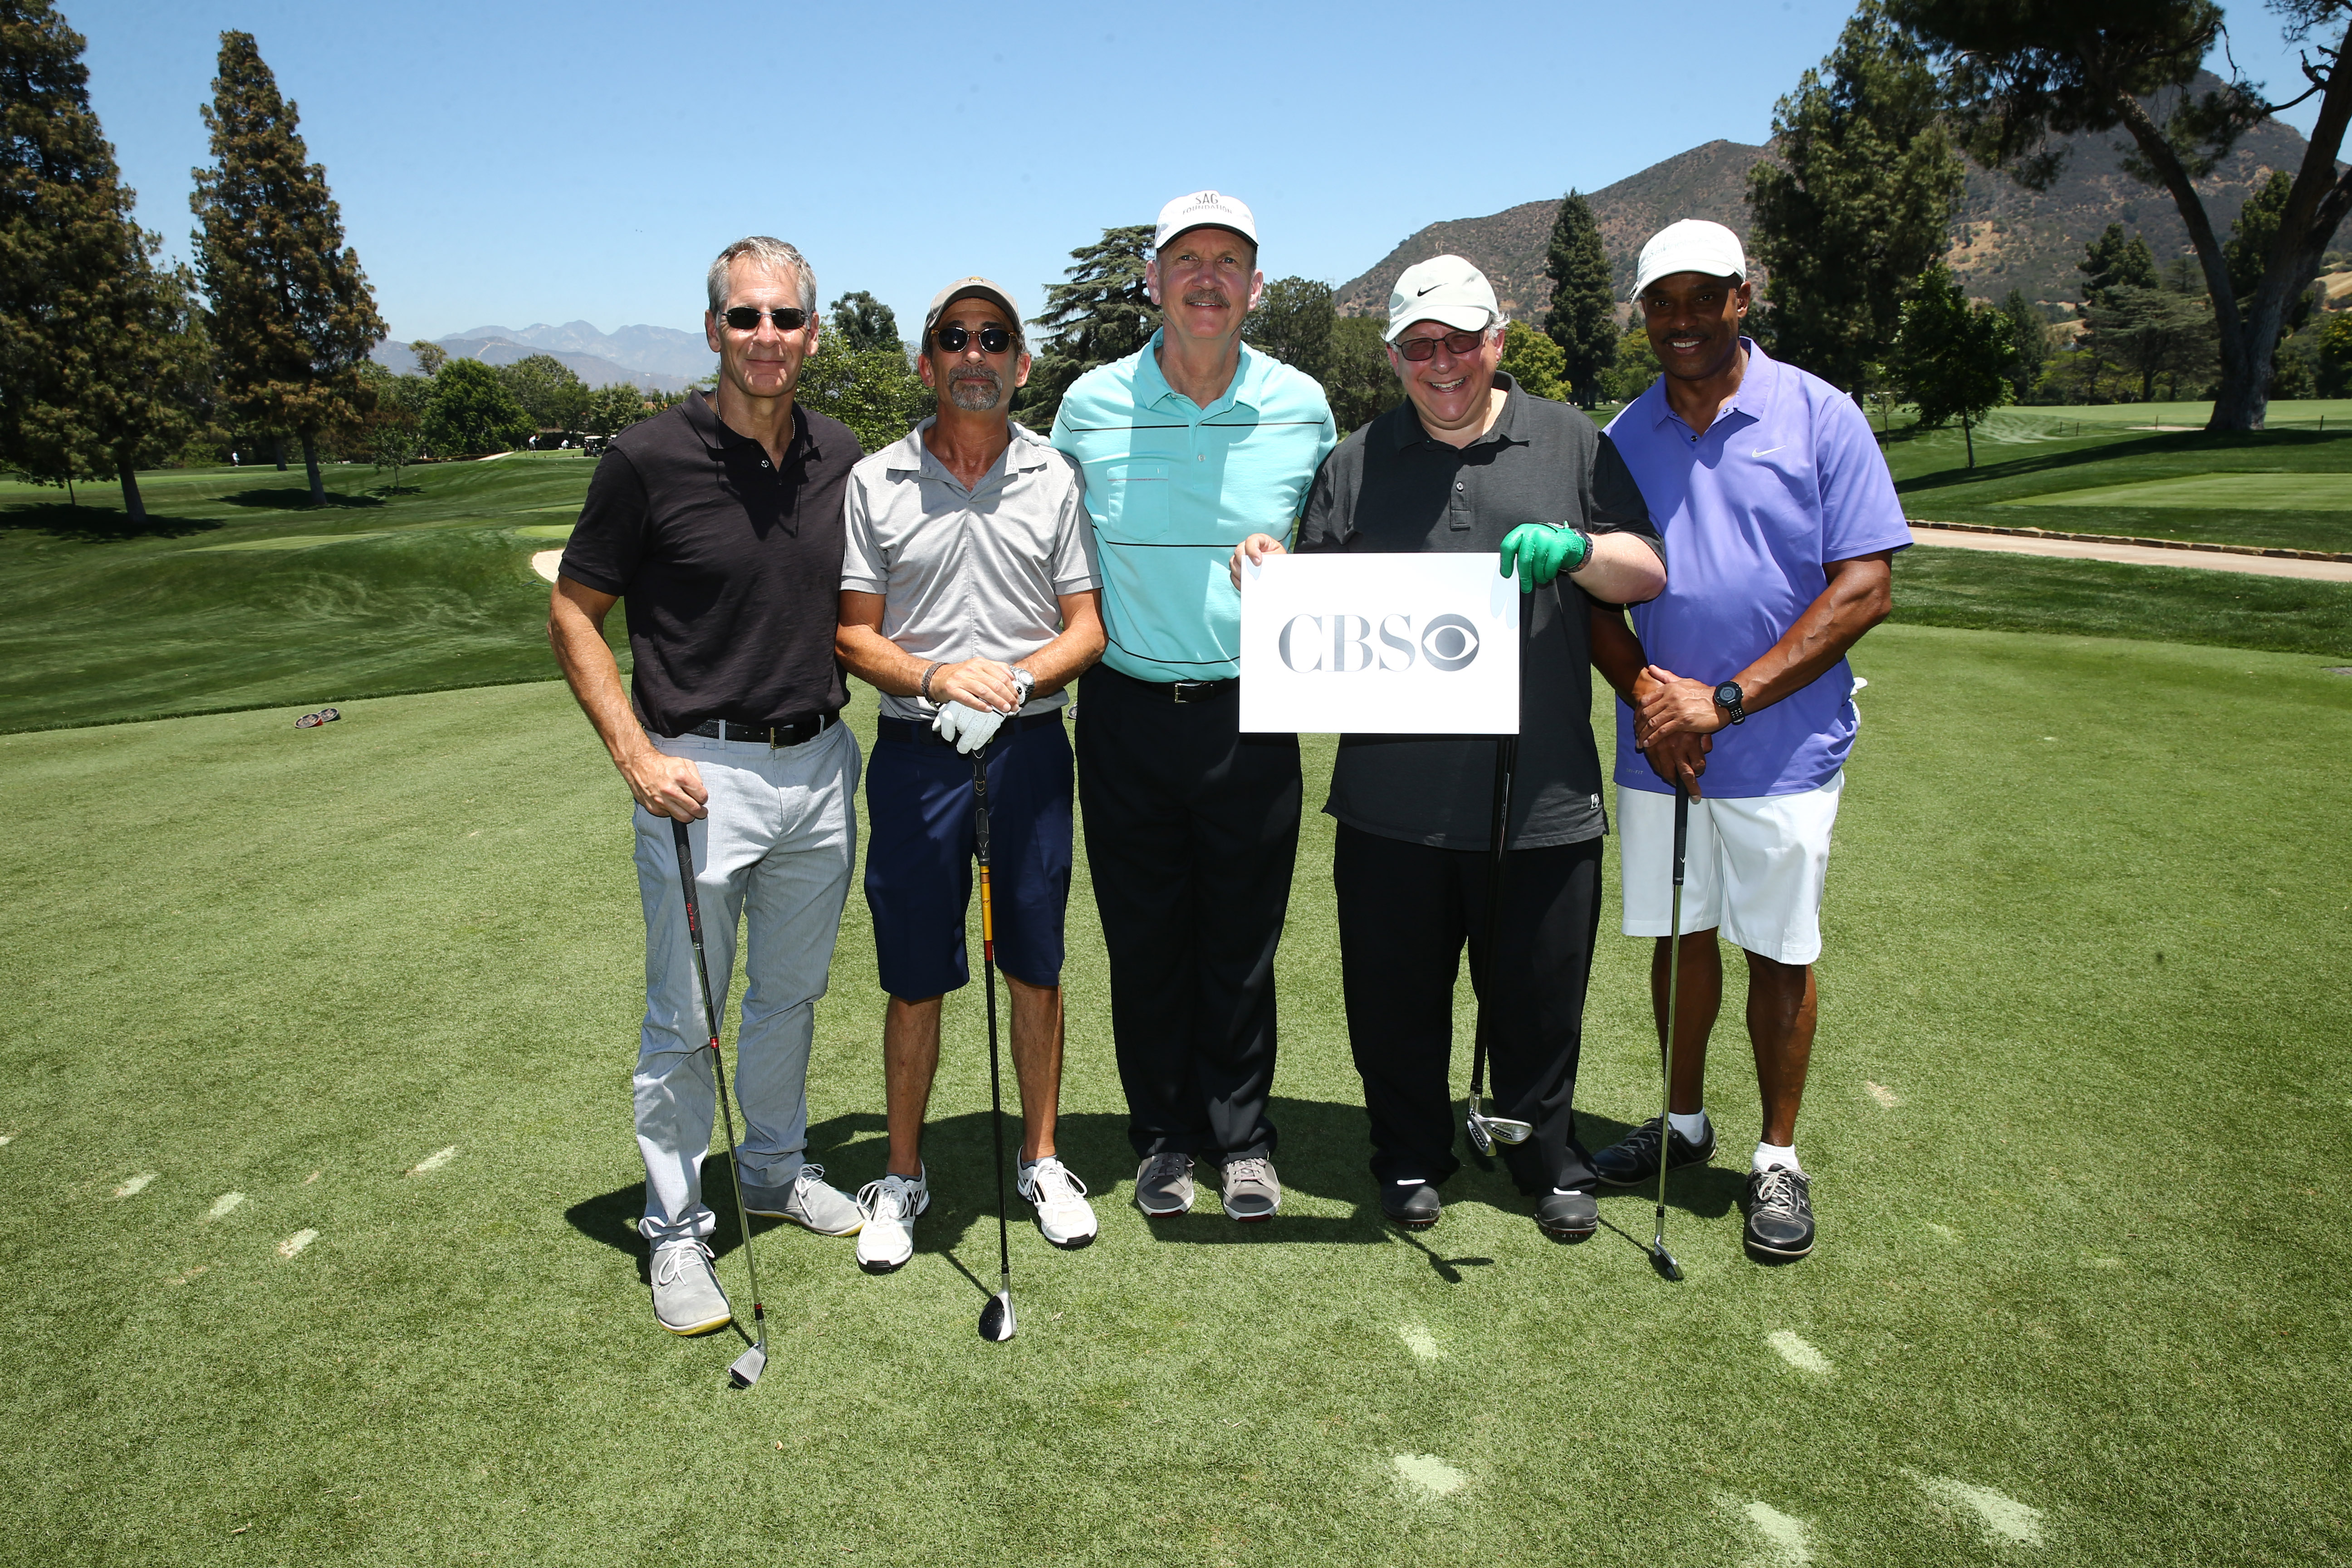 Scott Bakula, Jim Heyman, Michael O'Neill, Gary Glasberg and Rocky Carroll of Team CBS play at the Screen Actors Guild Foundation's 6th Annual Los Angeles Golf Classic on June 8, 2015 in Burbank, California. (Photo by Mark Davis/Getty Images for The Screen Actors Guild Foundation)